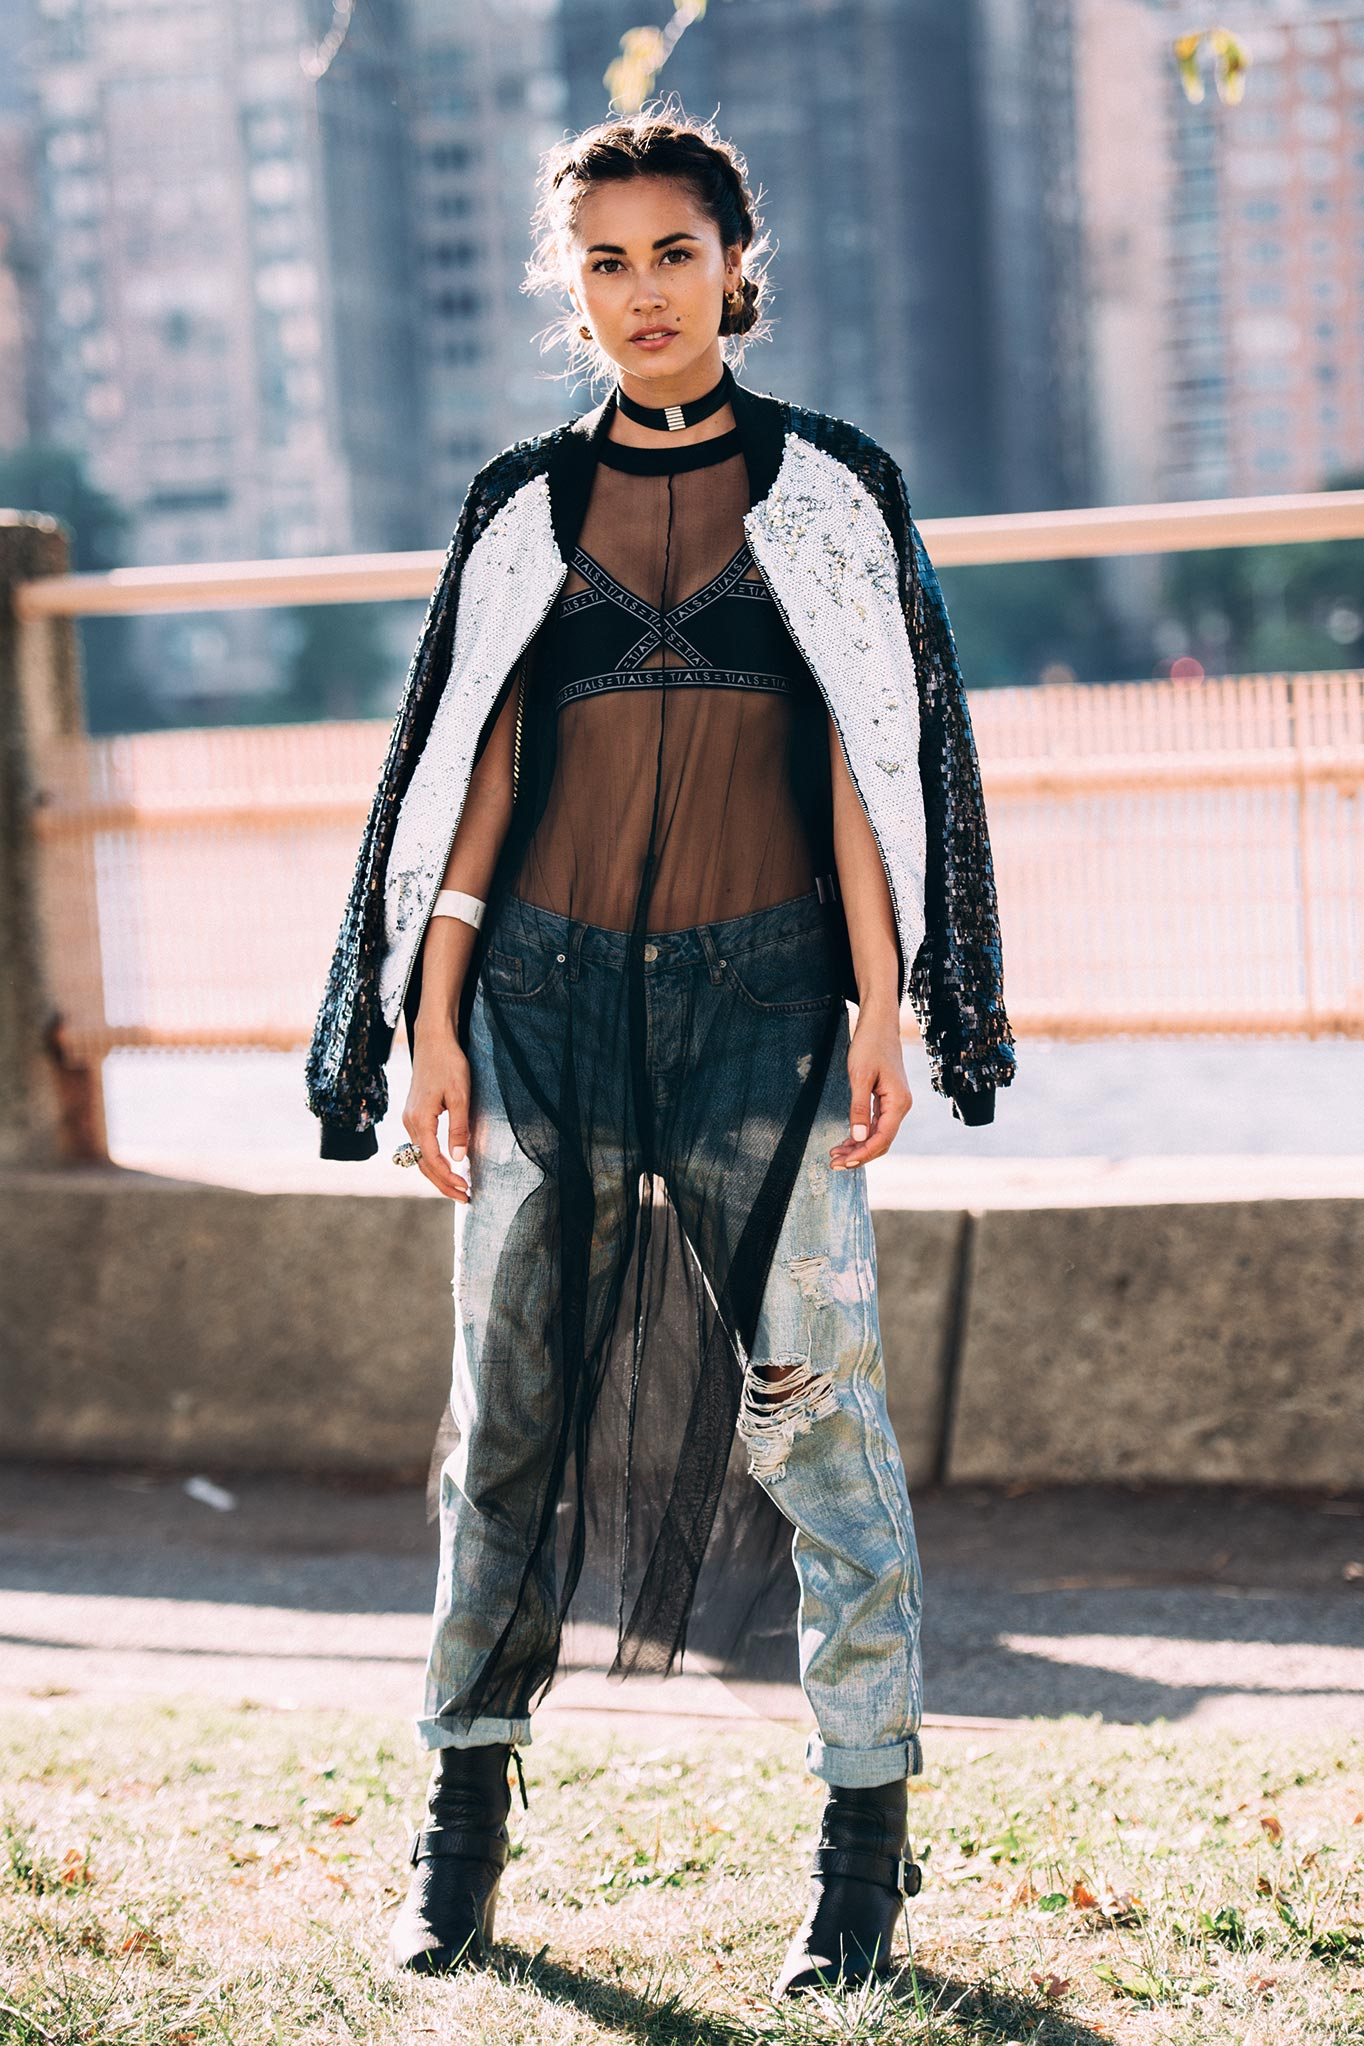 Ana Tanaka at New York Fashion Week Spring/Summer 2017